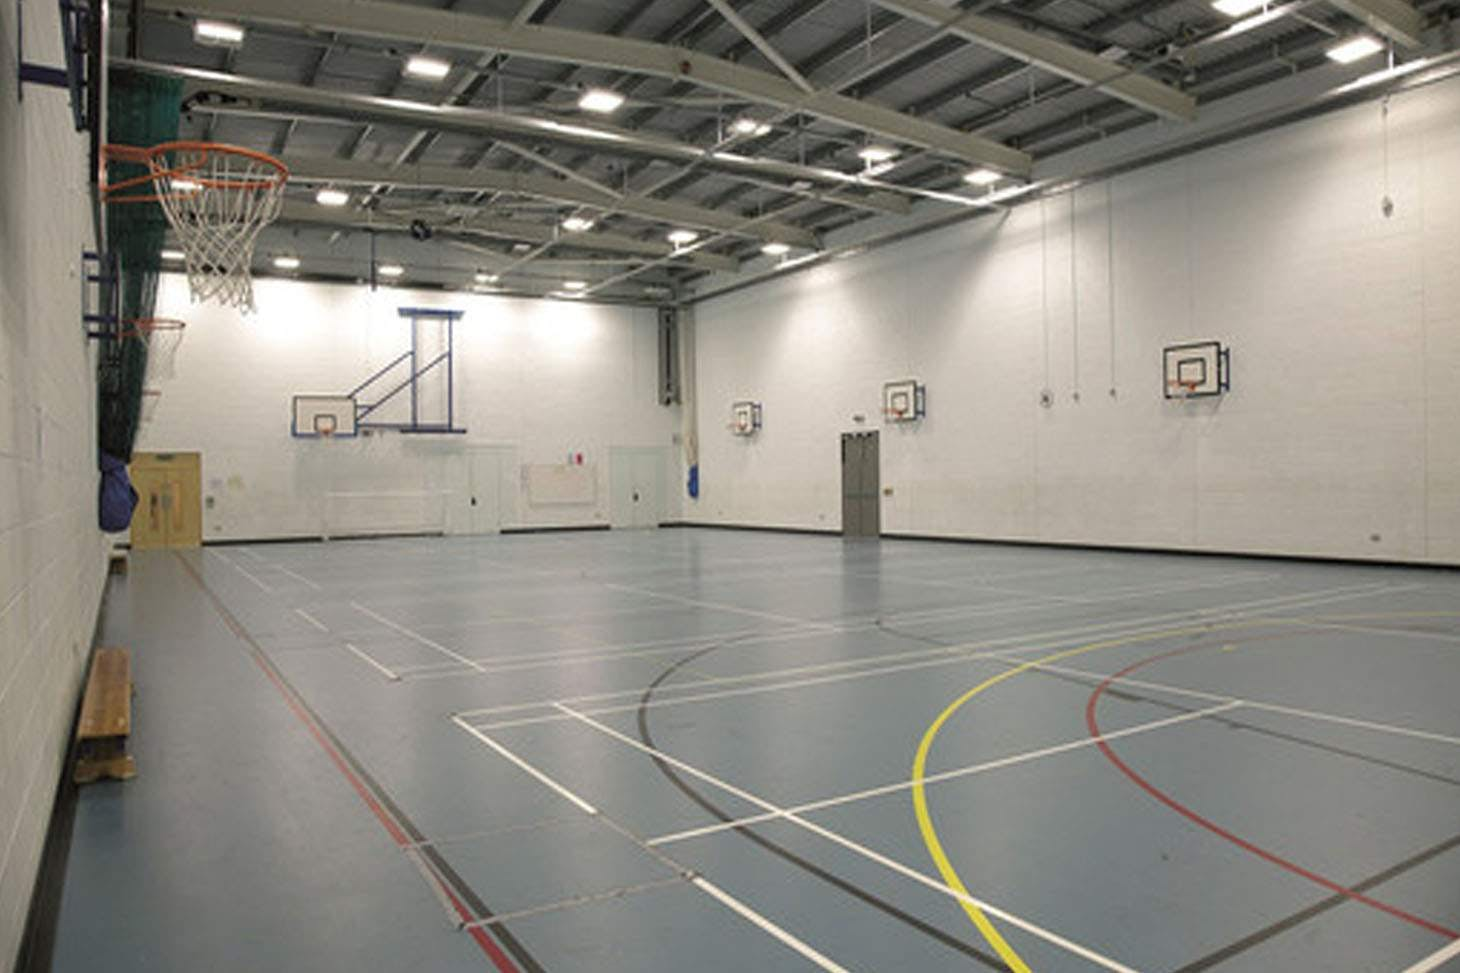 Sheffield Park Academy Indoor badminton court